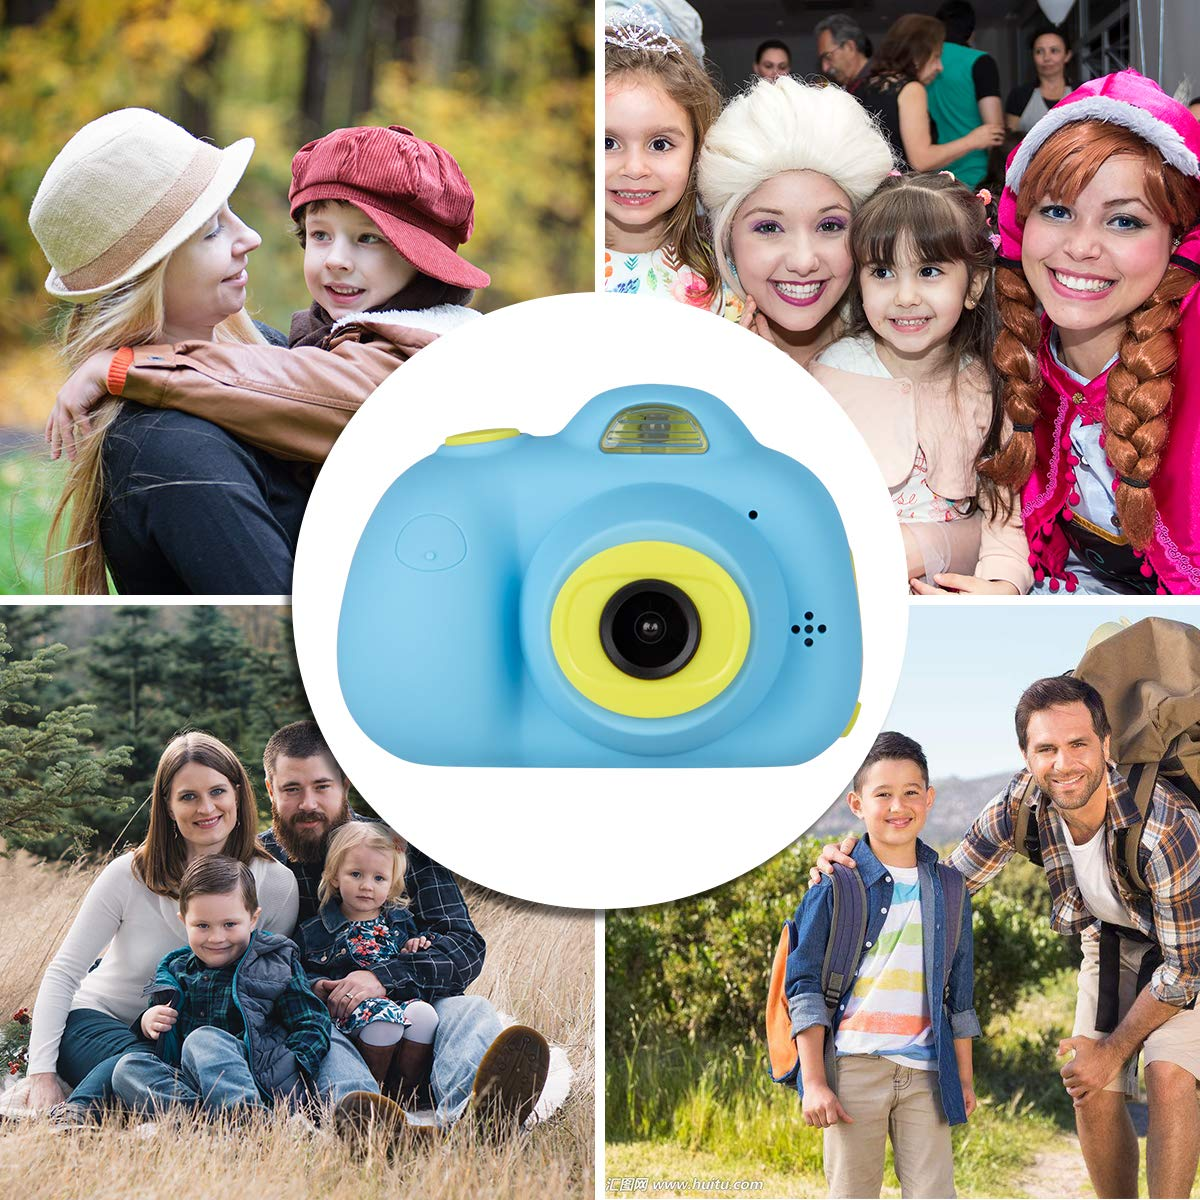 Kids Cameras Dual Selfie Digital Camera HD Video Recorder Action Camera Camcorder for 4-9 Year Old Kids Birthday Festival Gifts Toys for Children Boys Girls 2.0'' LCD Screen 4X Digital Zoom (Blue) by Tyhbelle (Image #5)